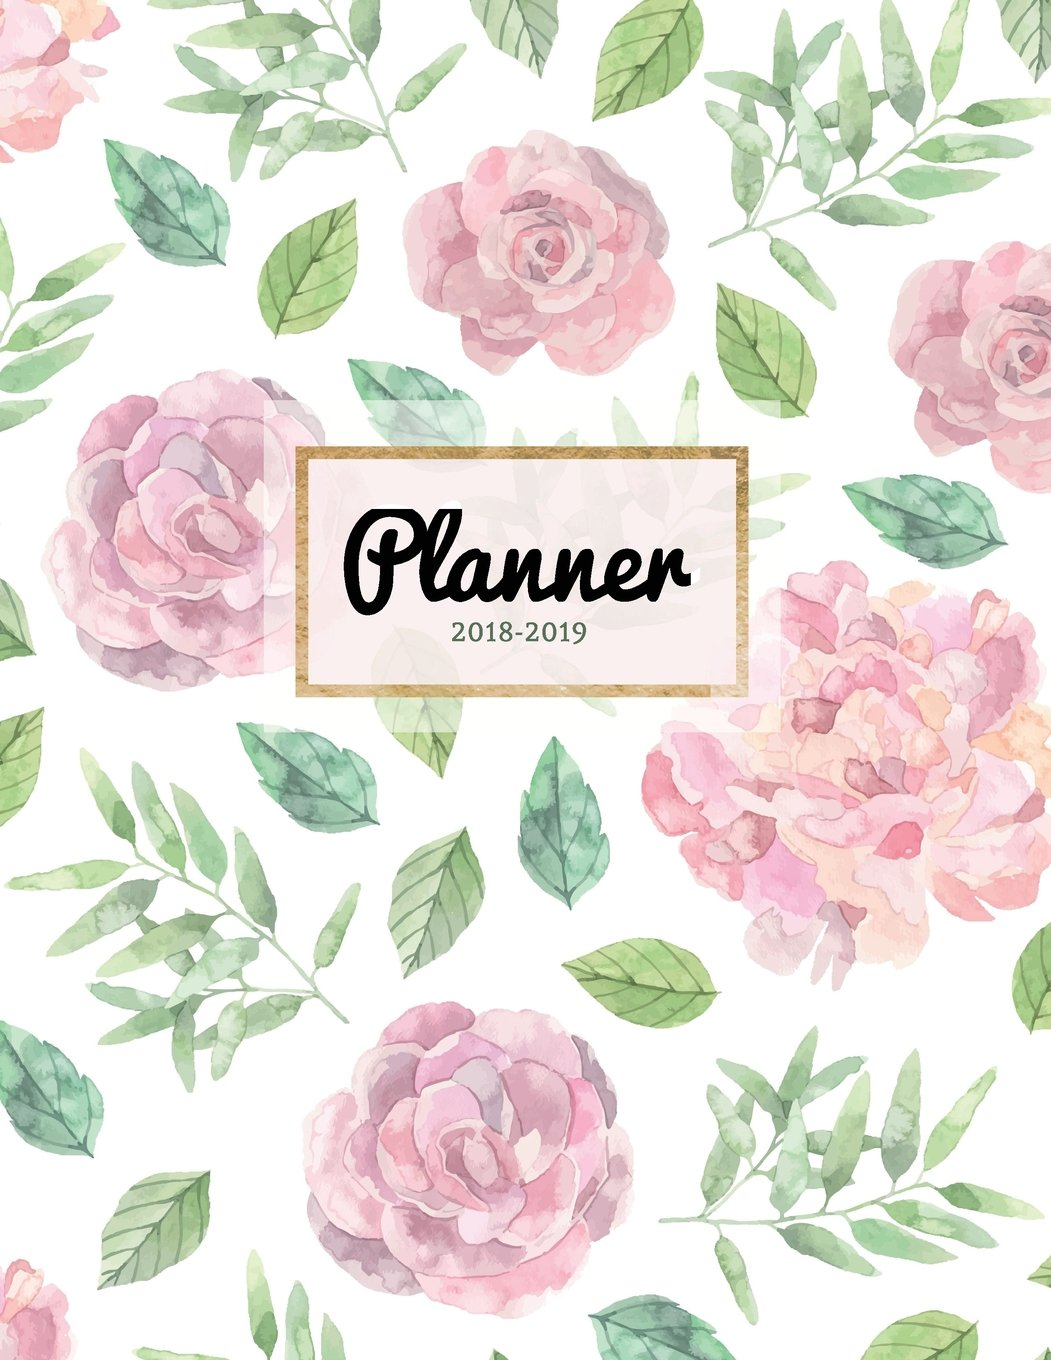 Planner 2018-2019: Pink Floral 18-Month Weekly Planner  July 2018 - Dec 2019 Weekly View  To-Do Lists, Inspirational Quotes + Much More (Mid Year Planners) (Volume 1) PDF